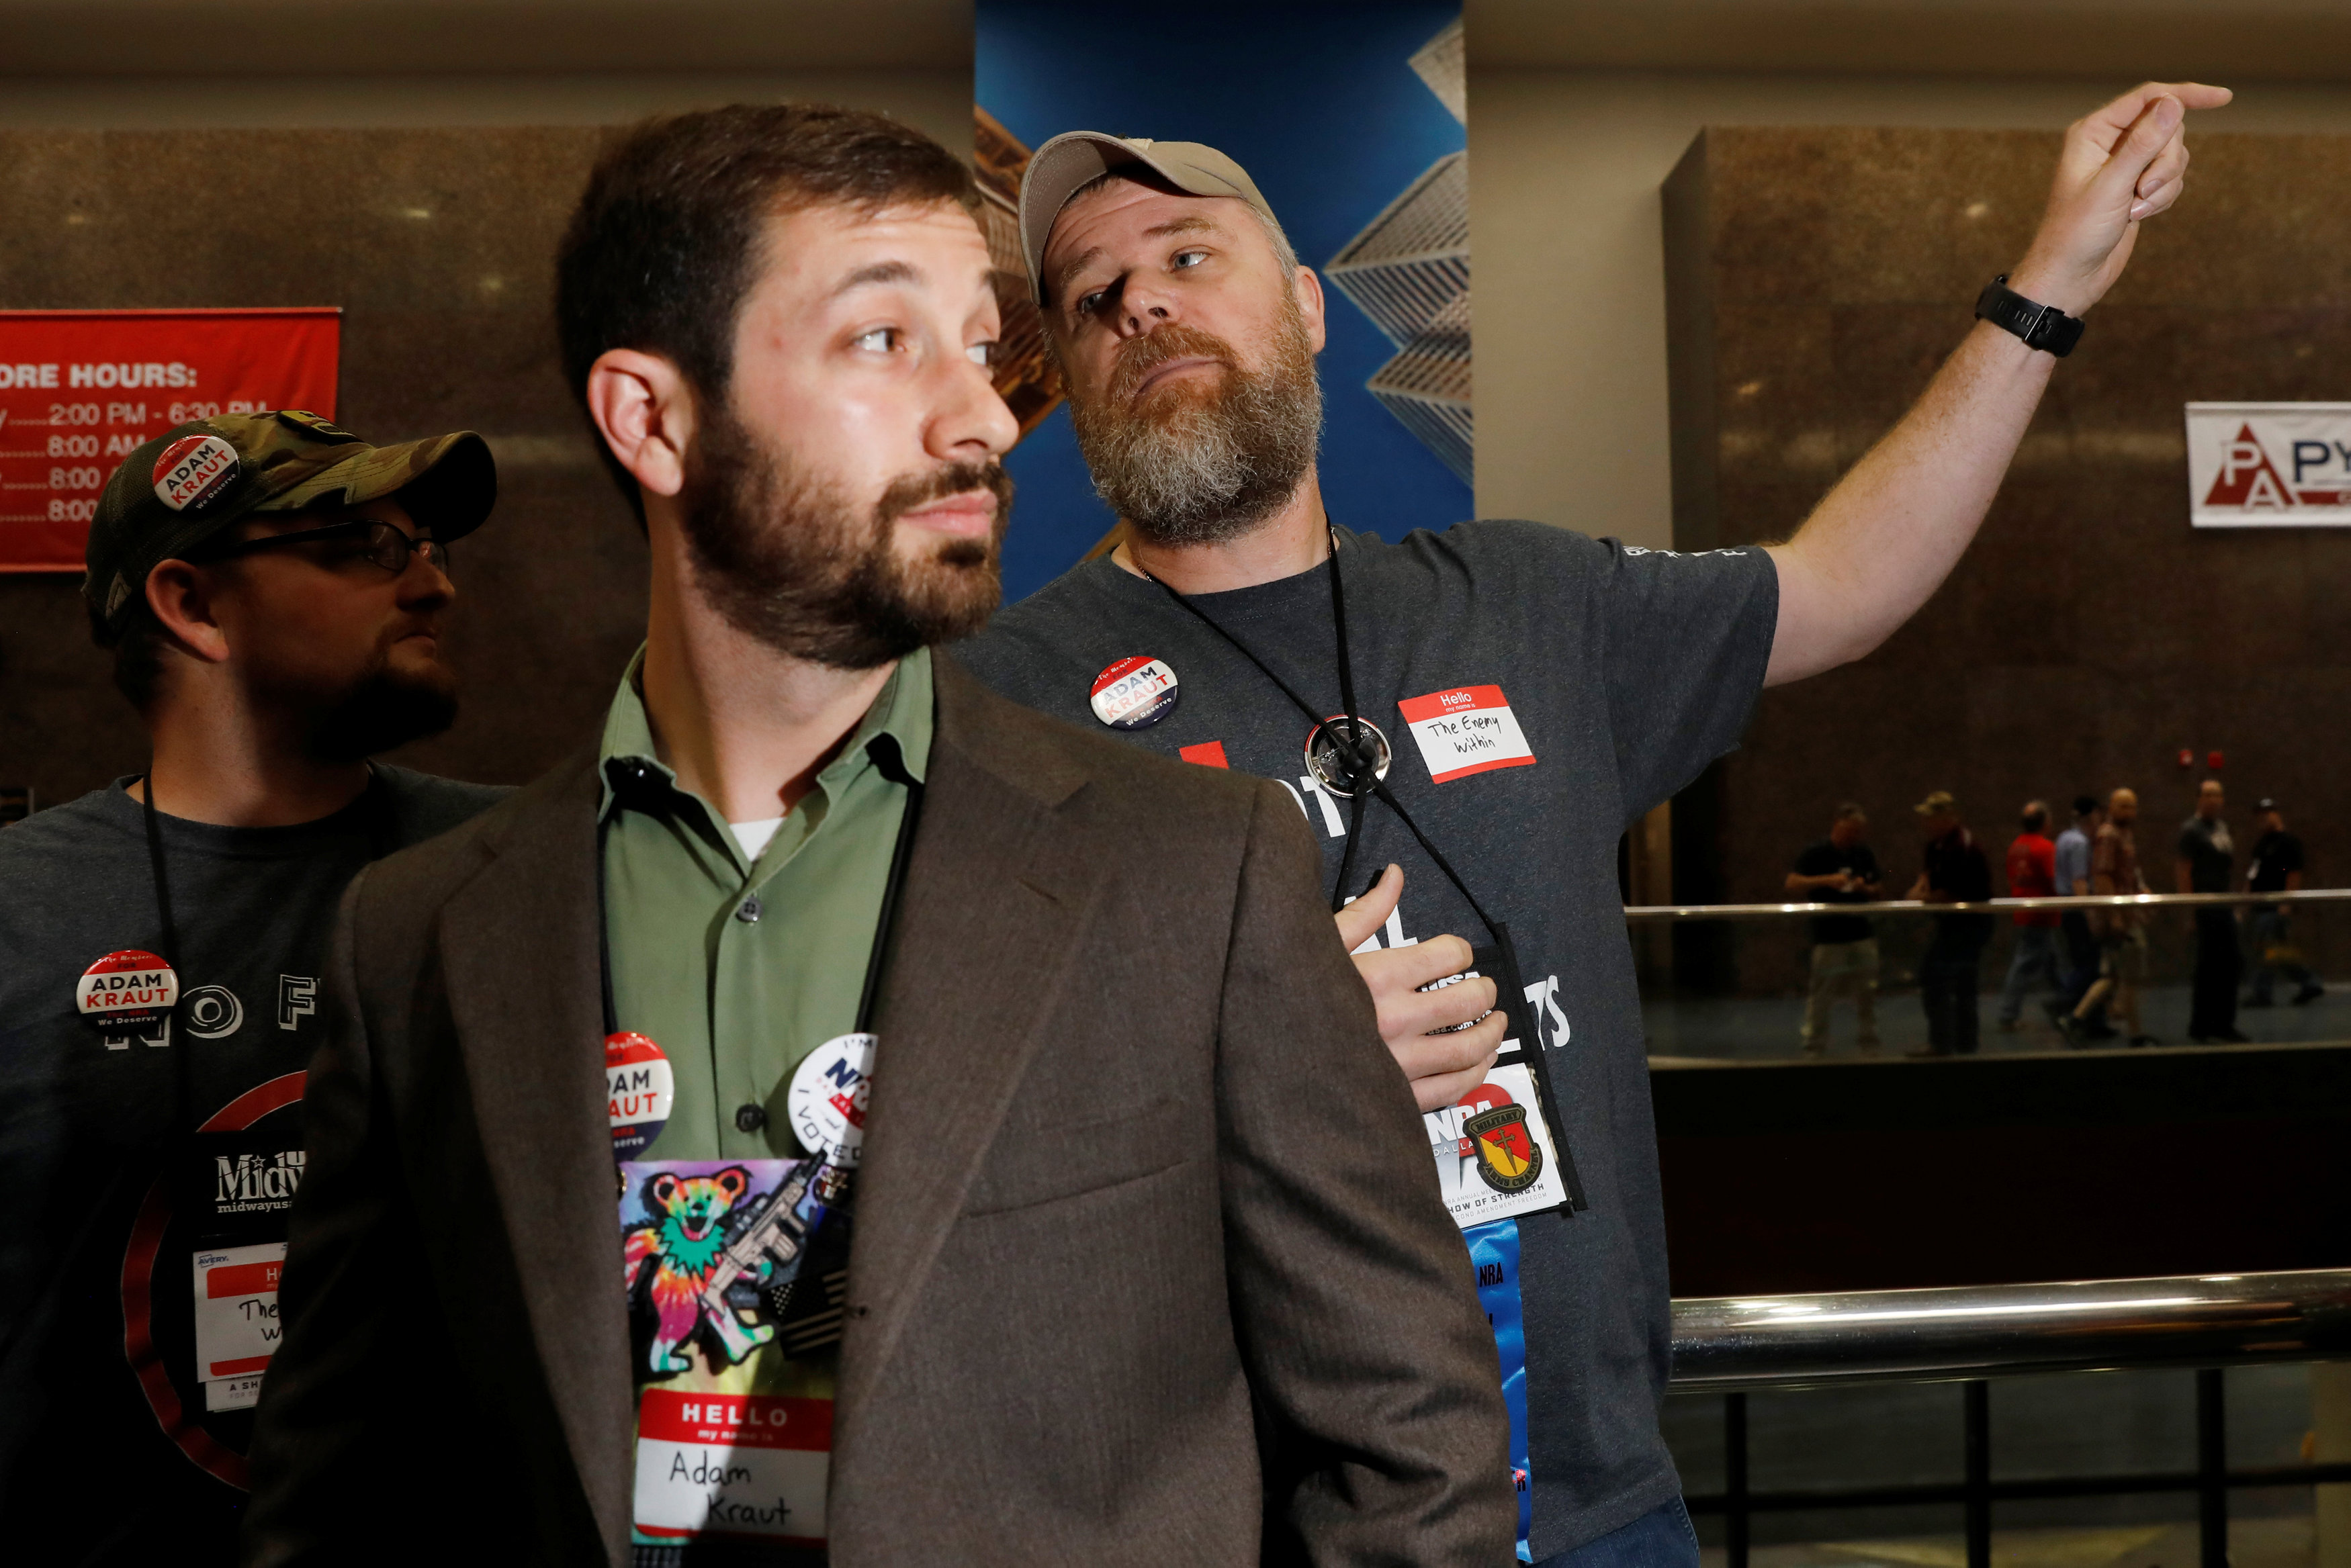 Gun rights proponents Adam Kraut and Tim Harmsen, speak to NRA members about Kraut's candidacy for a seat on the board of the National Rifle Association (NRA) at the organisation's convention in Dallas